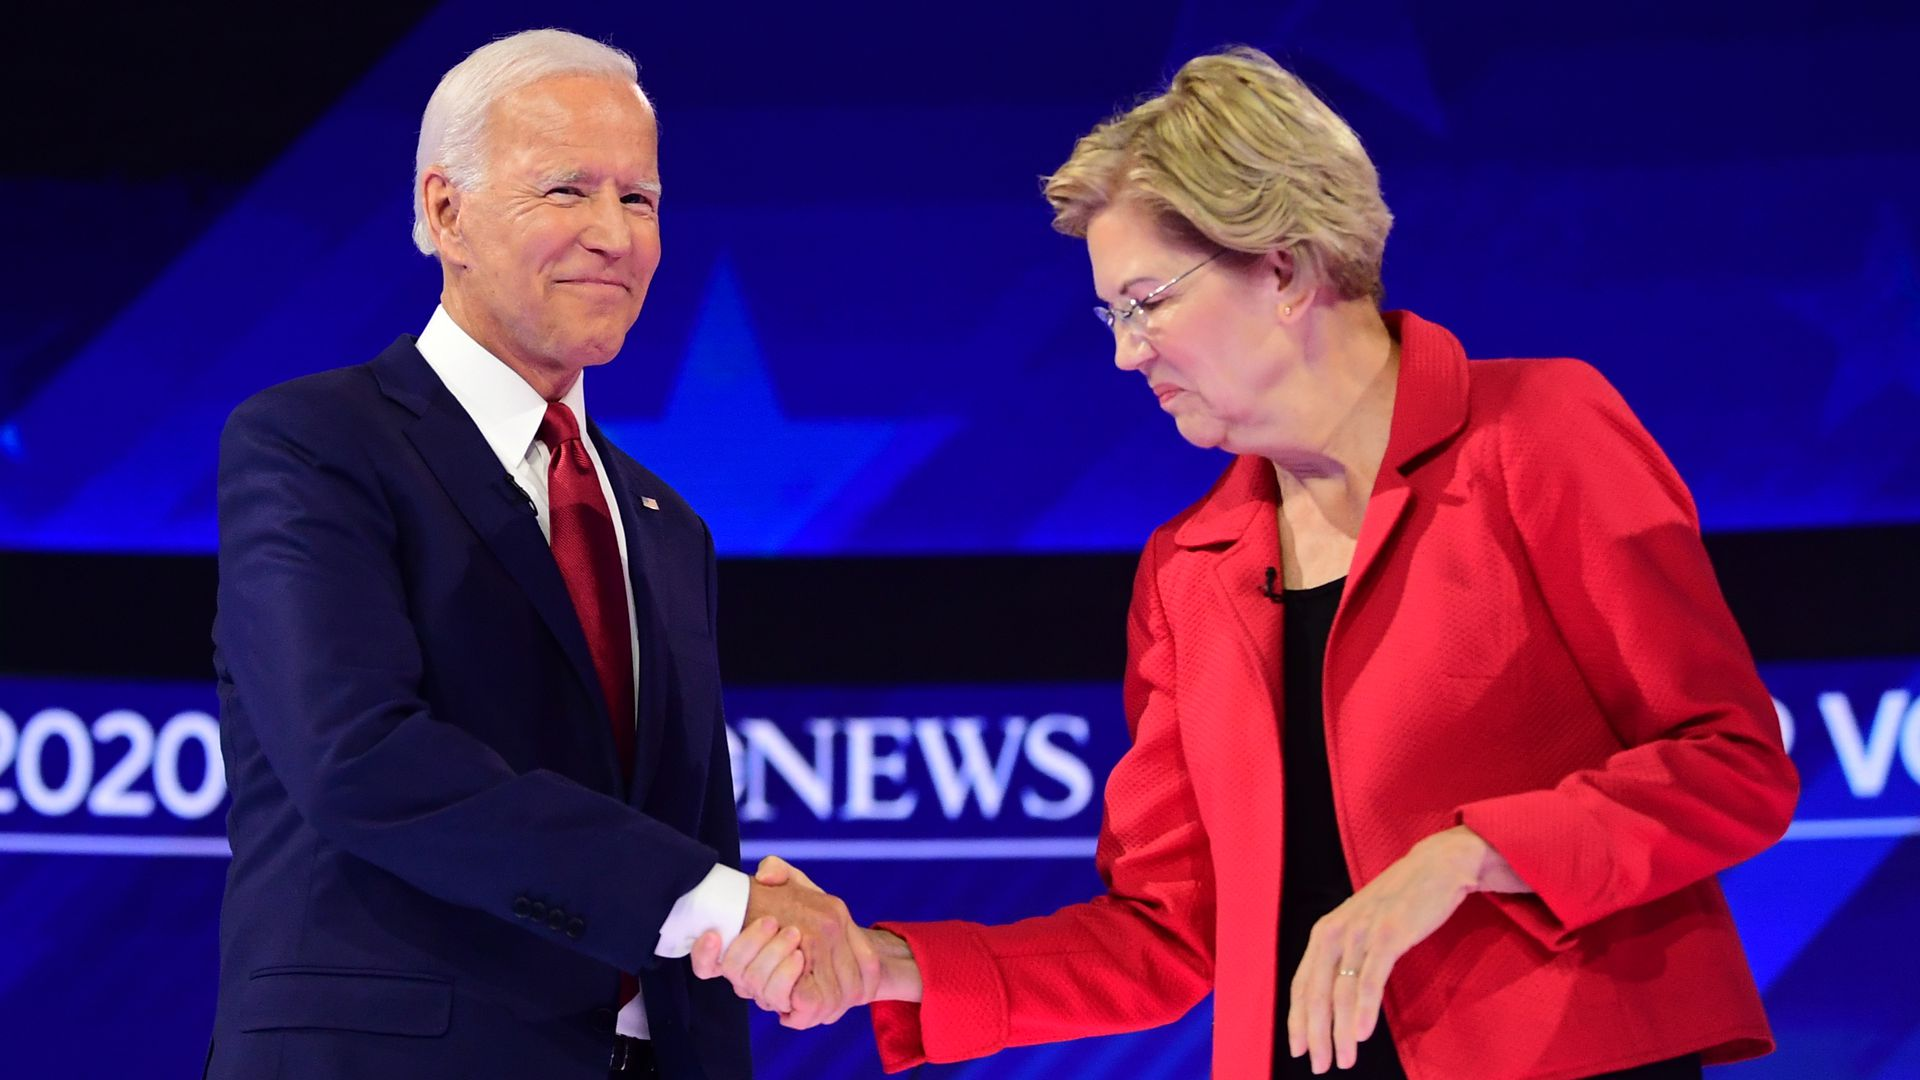 Warren and Biden shaking hands.